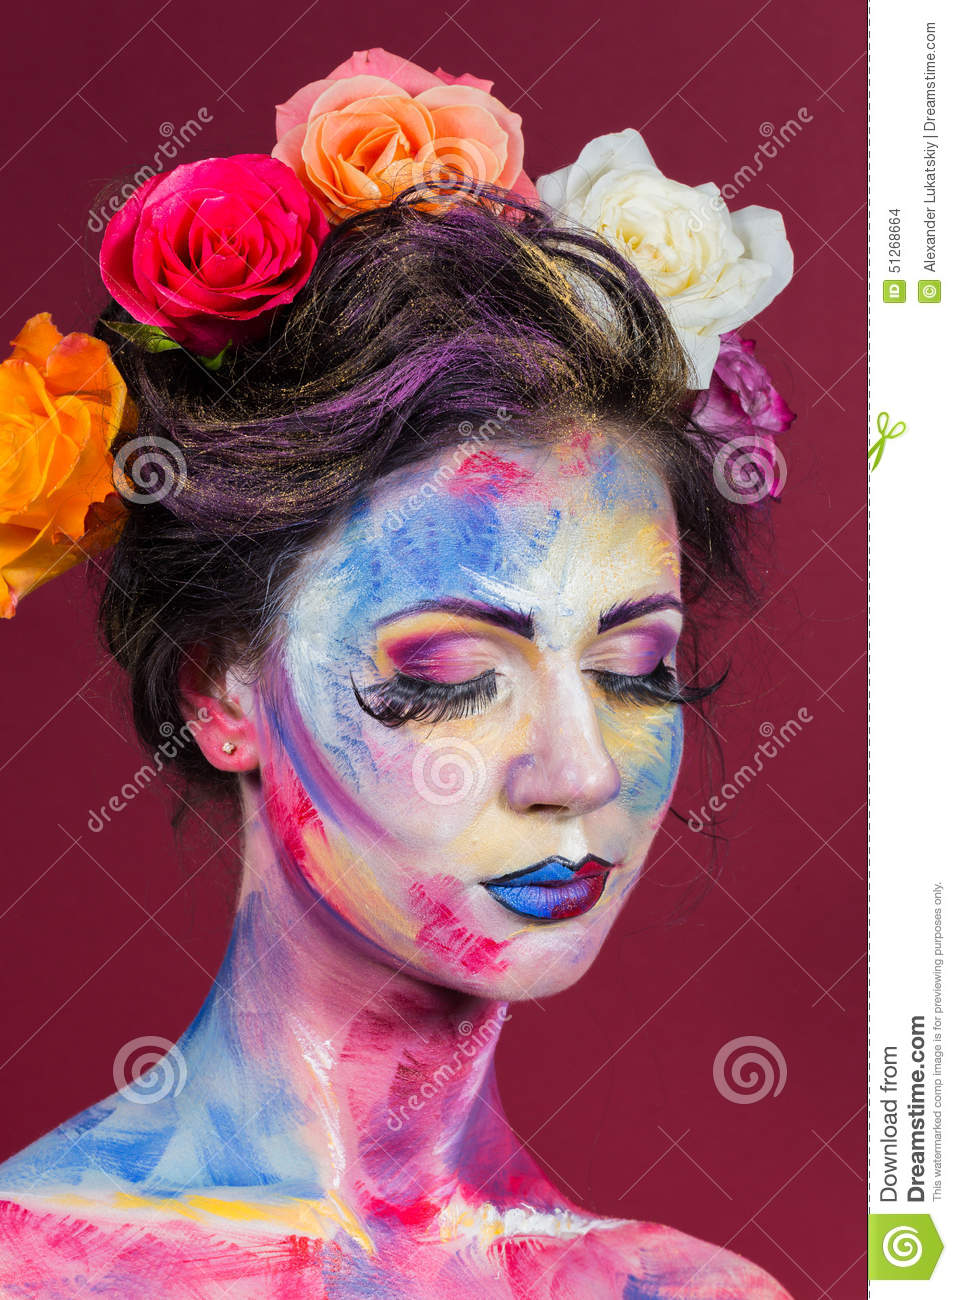 Floral Makeup Stock Photo Image 51268664